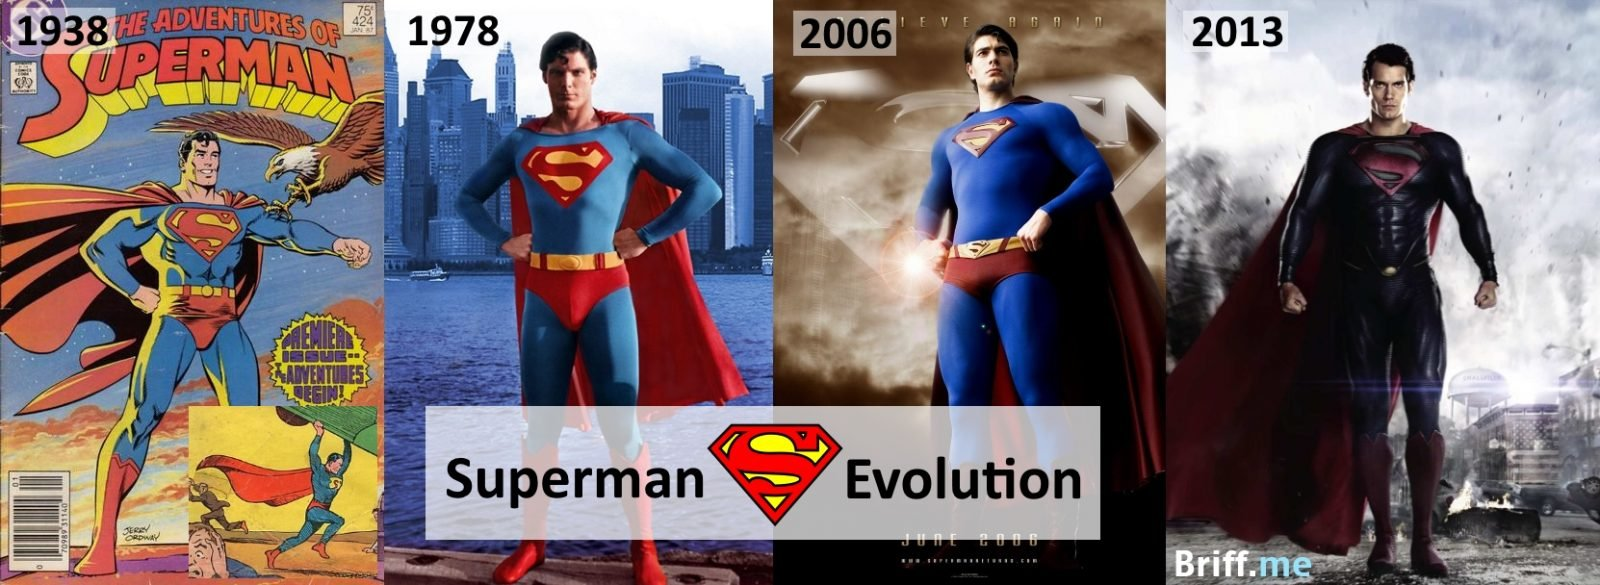 Superhero Evolution Superman 1938-2013